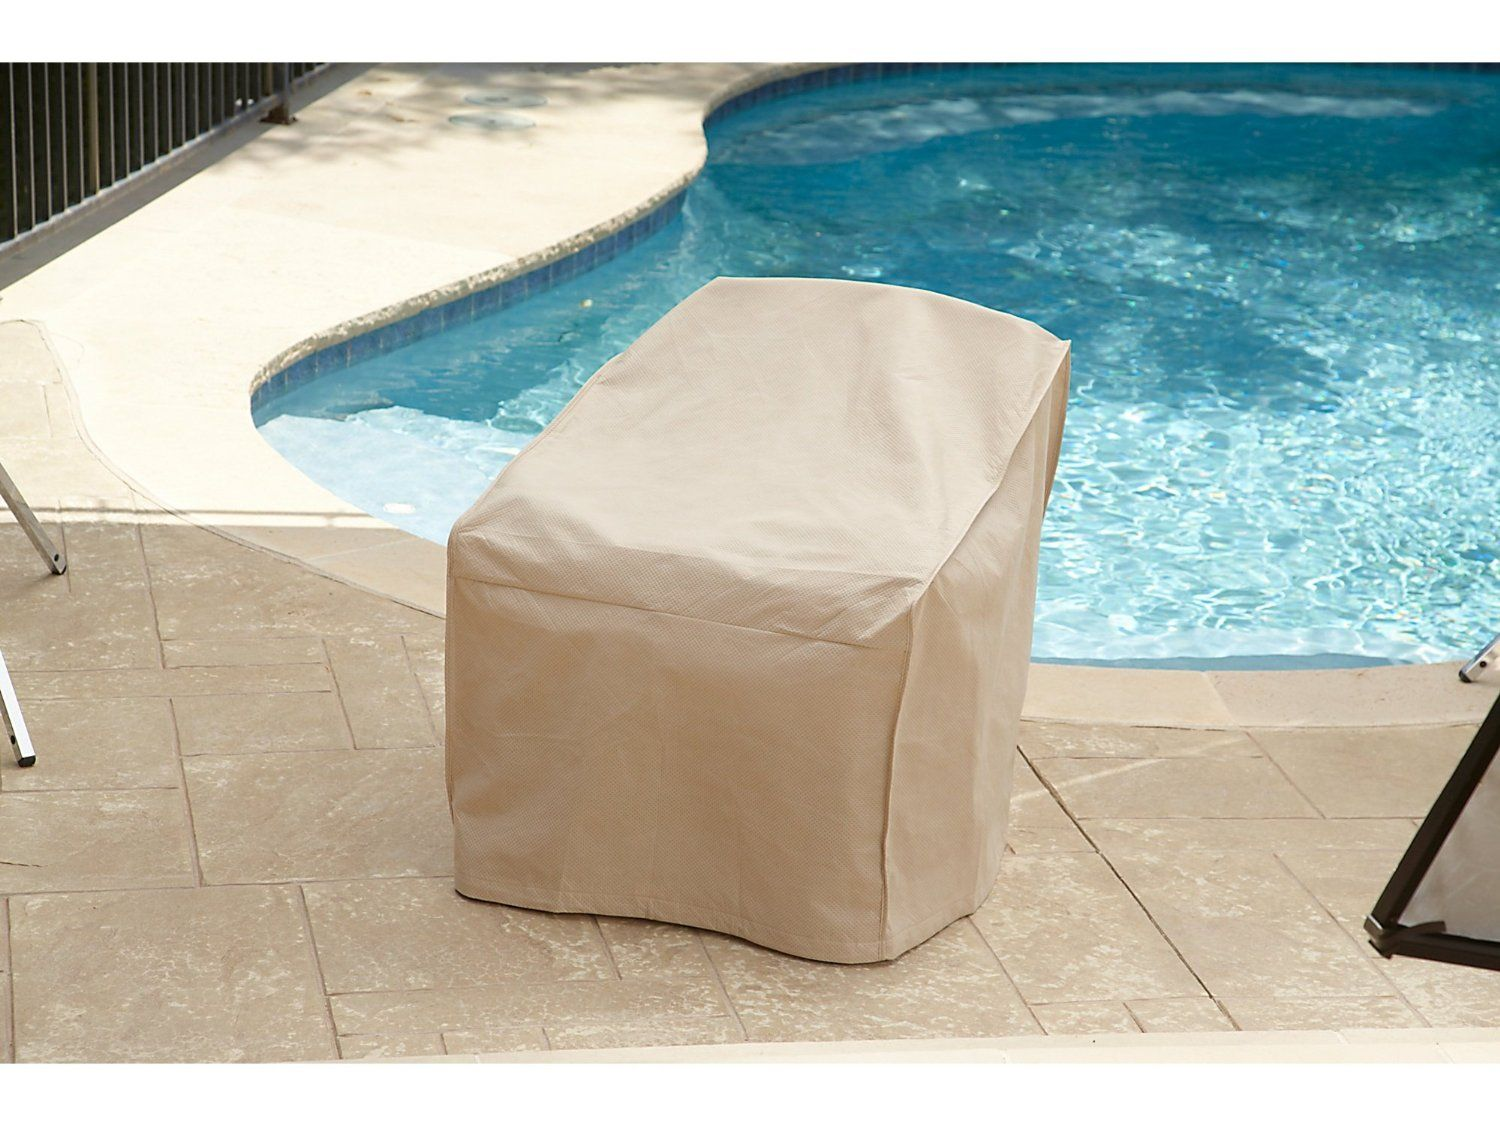 Amazon Com Covermates Outdoor Chair Cover 32w X 32d X 35h Select Select 3 Patio Chair Covers Outdoor Chair Cover Patio Furniture Covers Patio Chair Covers